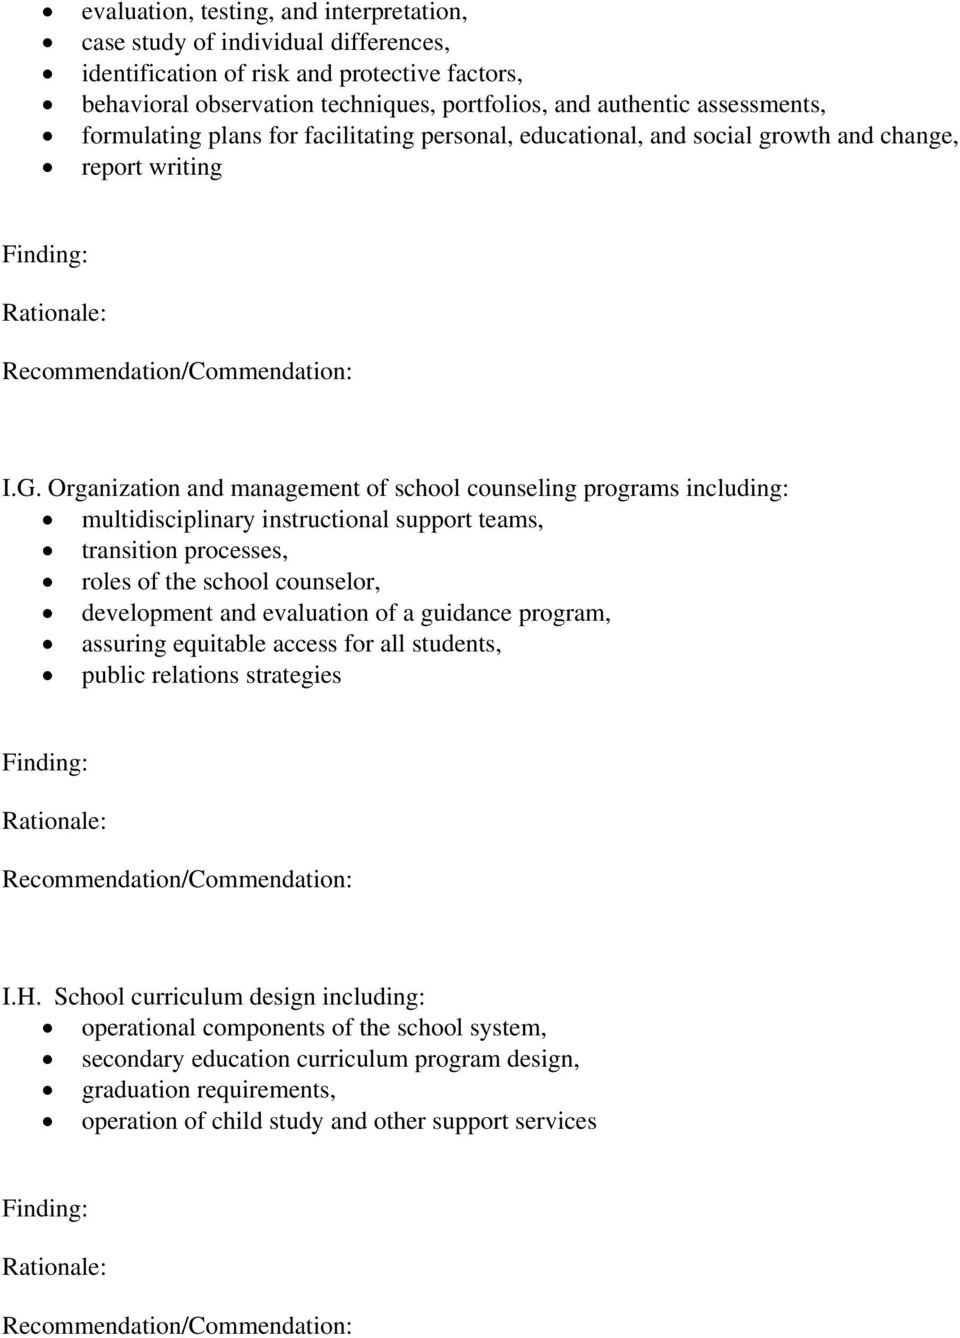 Organization and management of school counseling programs including: multidisciplinary instructional support teams, transition processes, roles of the school counselor, development and evaluation of